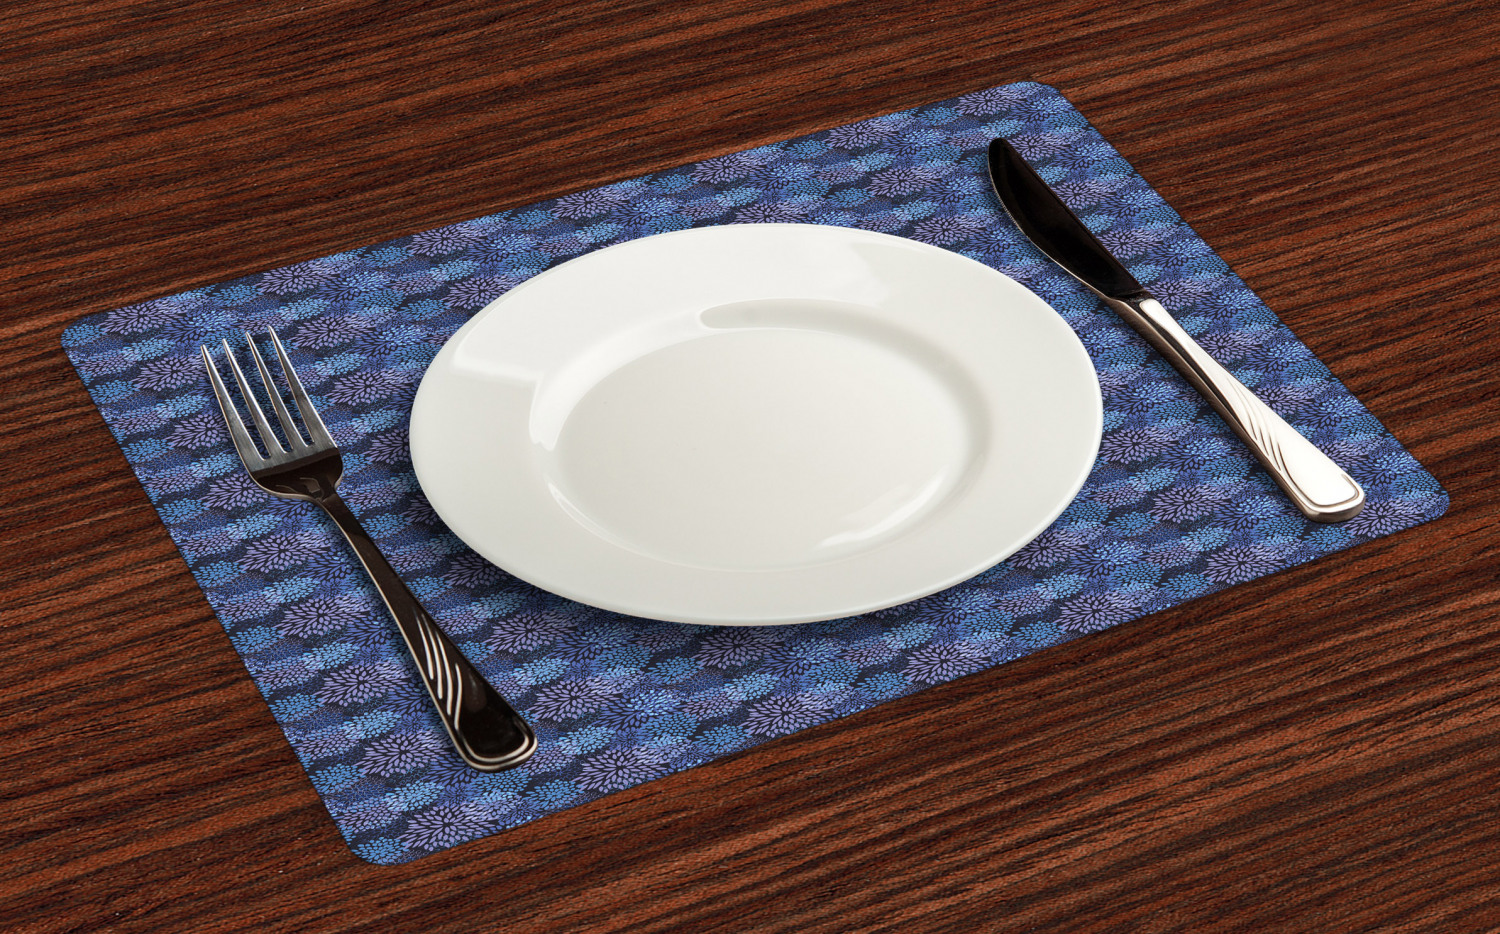 Ambesonne-Flower-Pattern-Placemat-Set-of-4-Fabric-Place-Mats-for-Table-Decor thumbnail 237